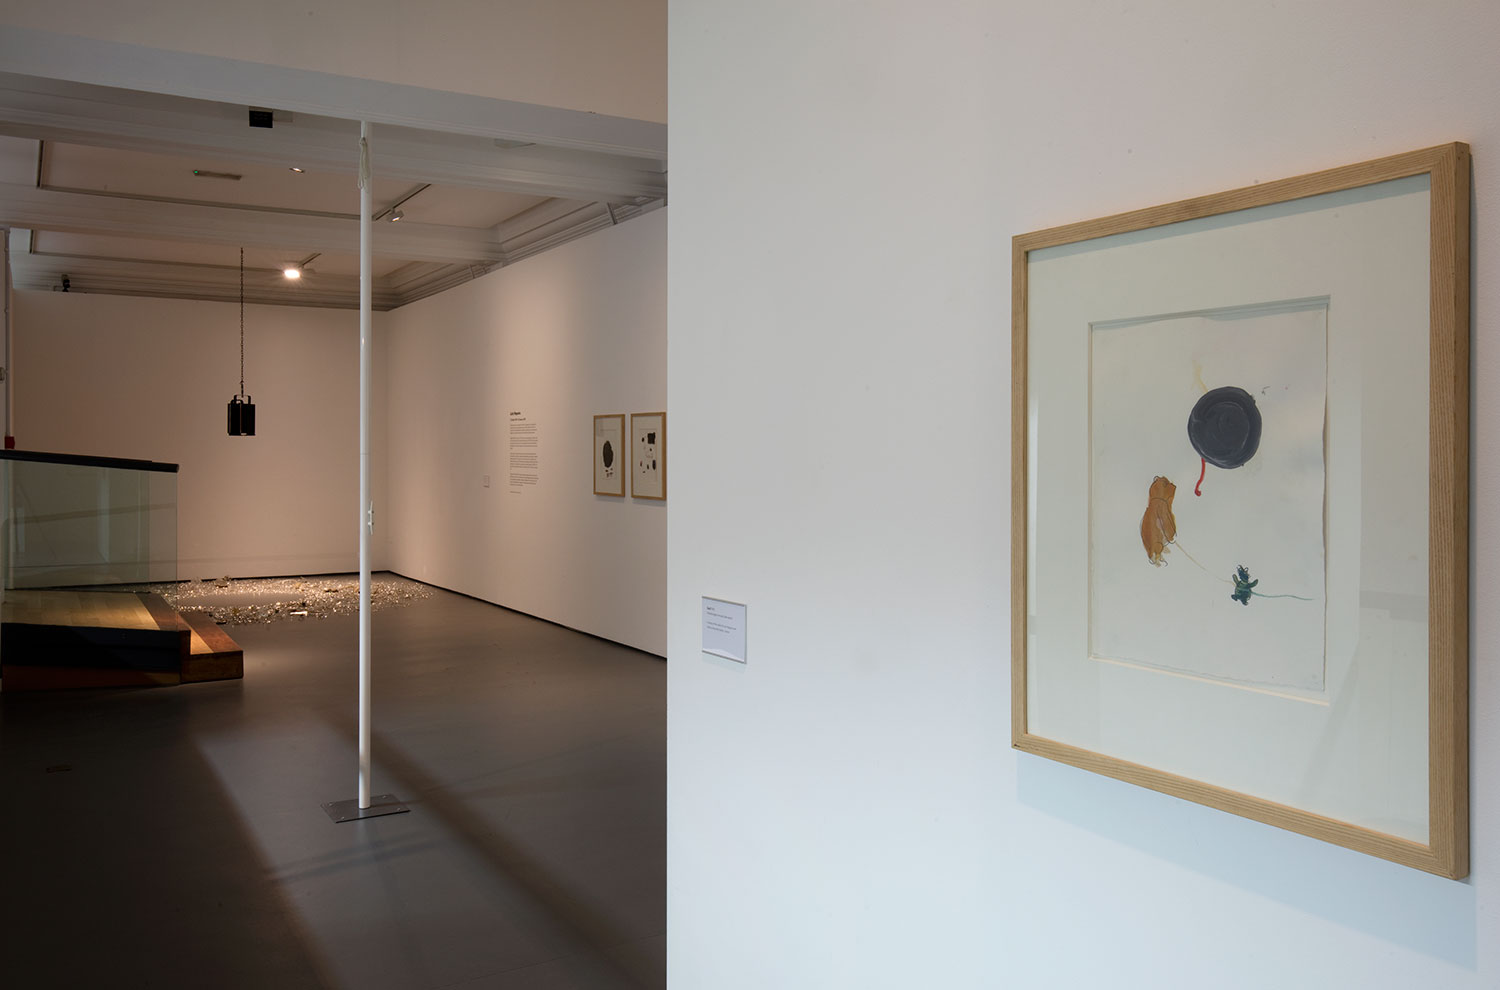 Installation view of Lucia Nogueira 10